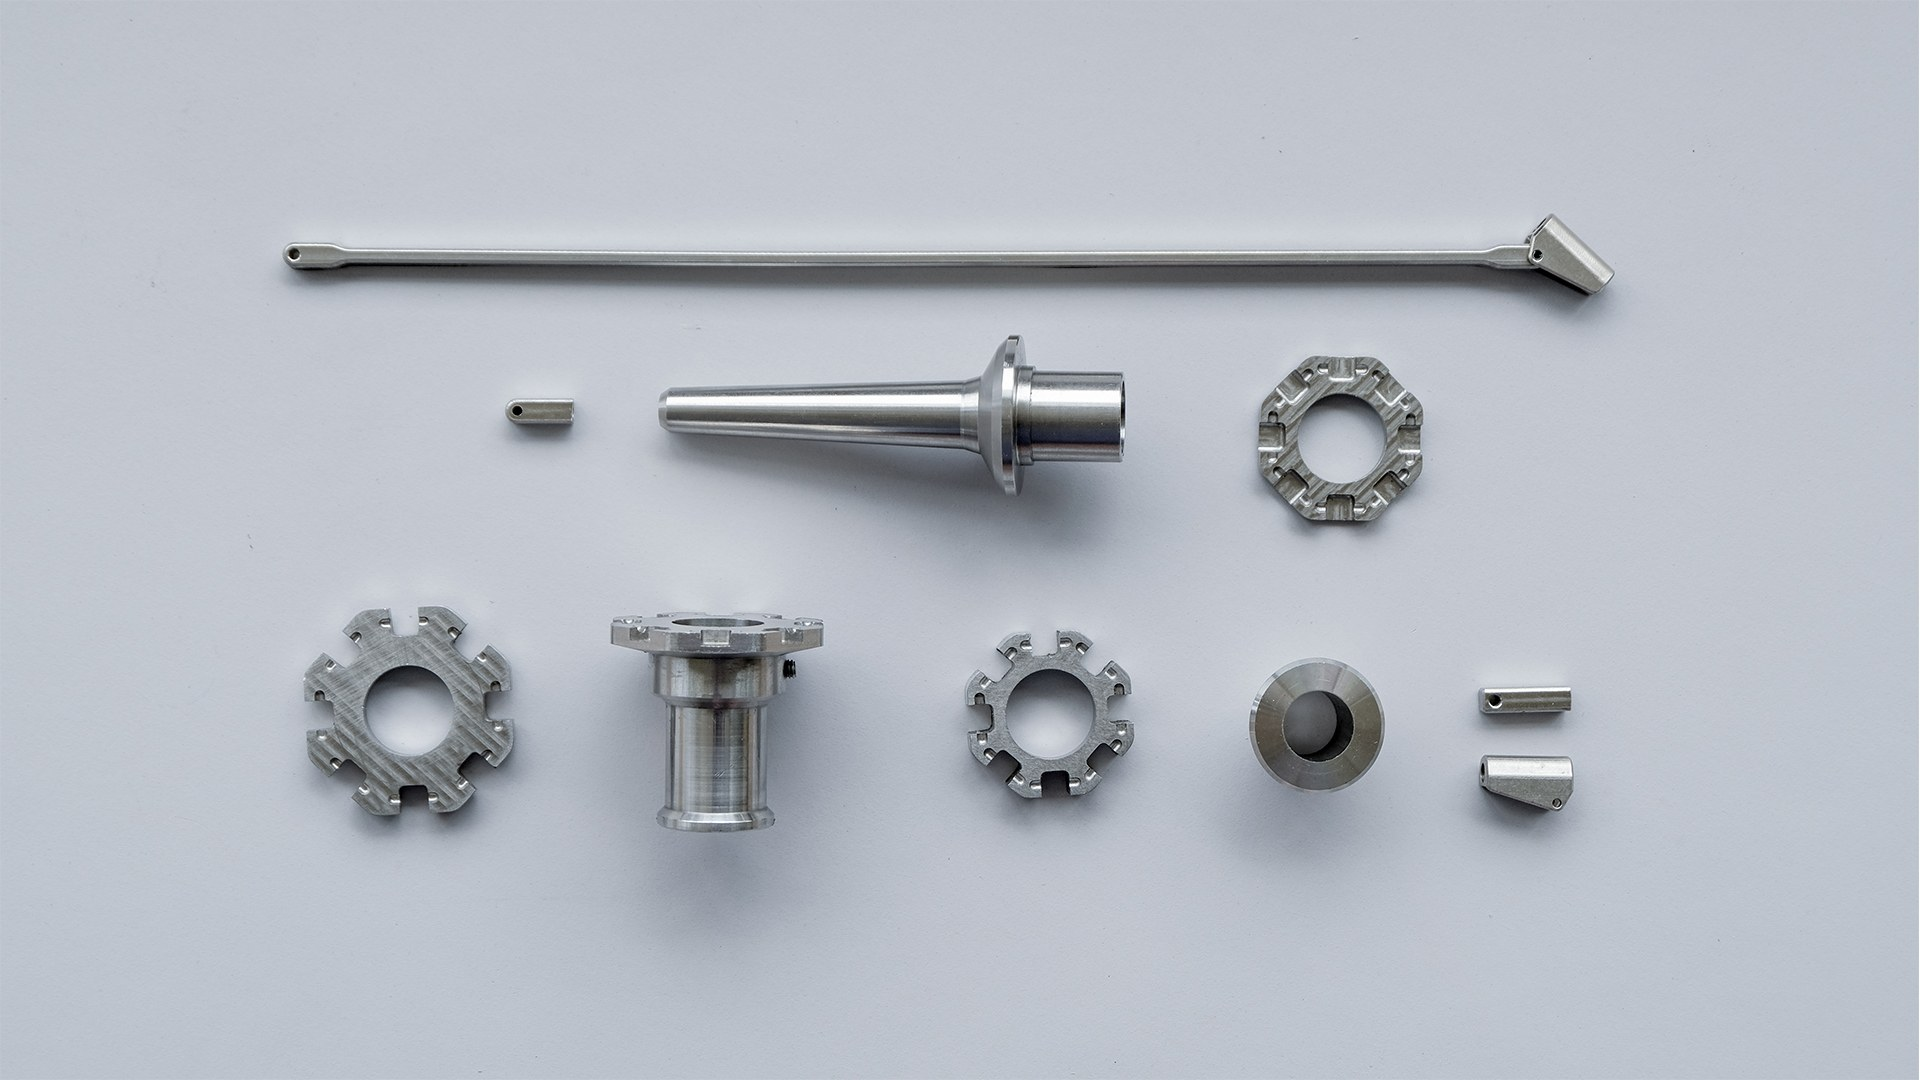 CNC milling was used to create the stainless steel parts.  Total weight of assembled umbrella: 1.71kg.